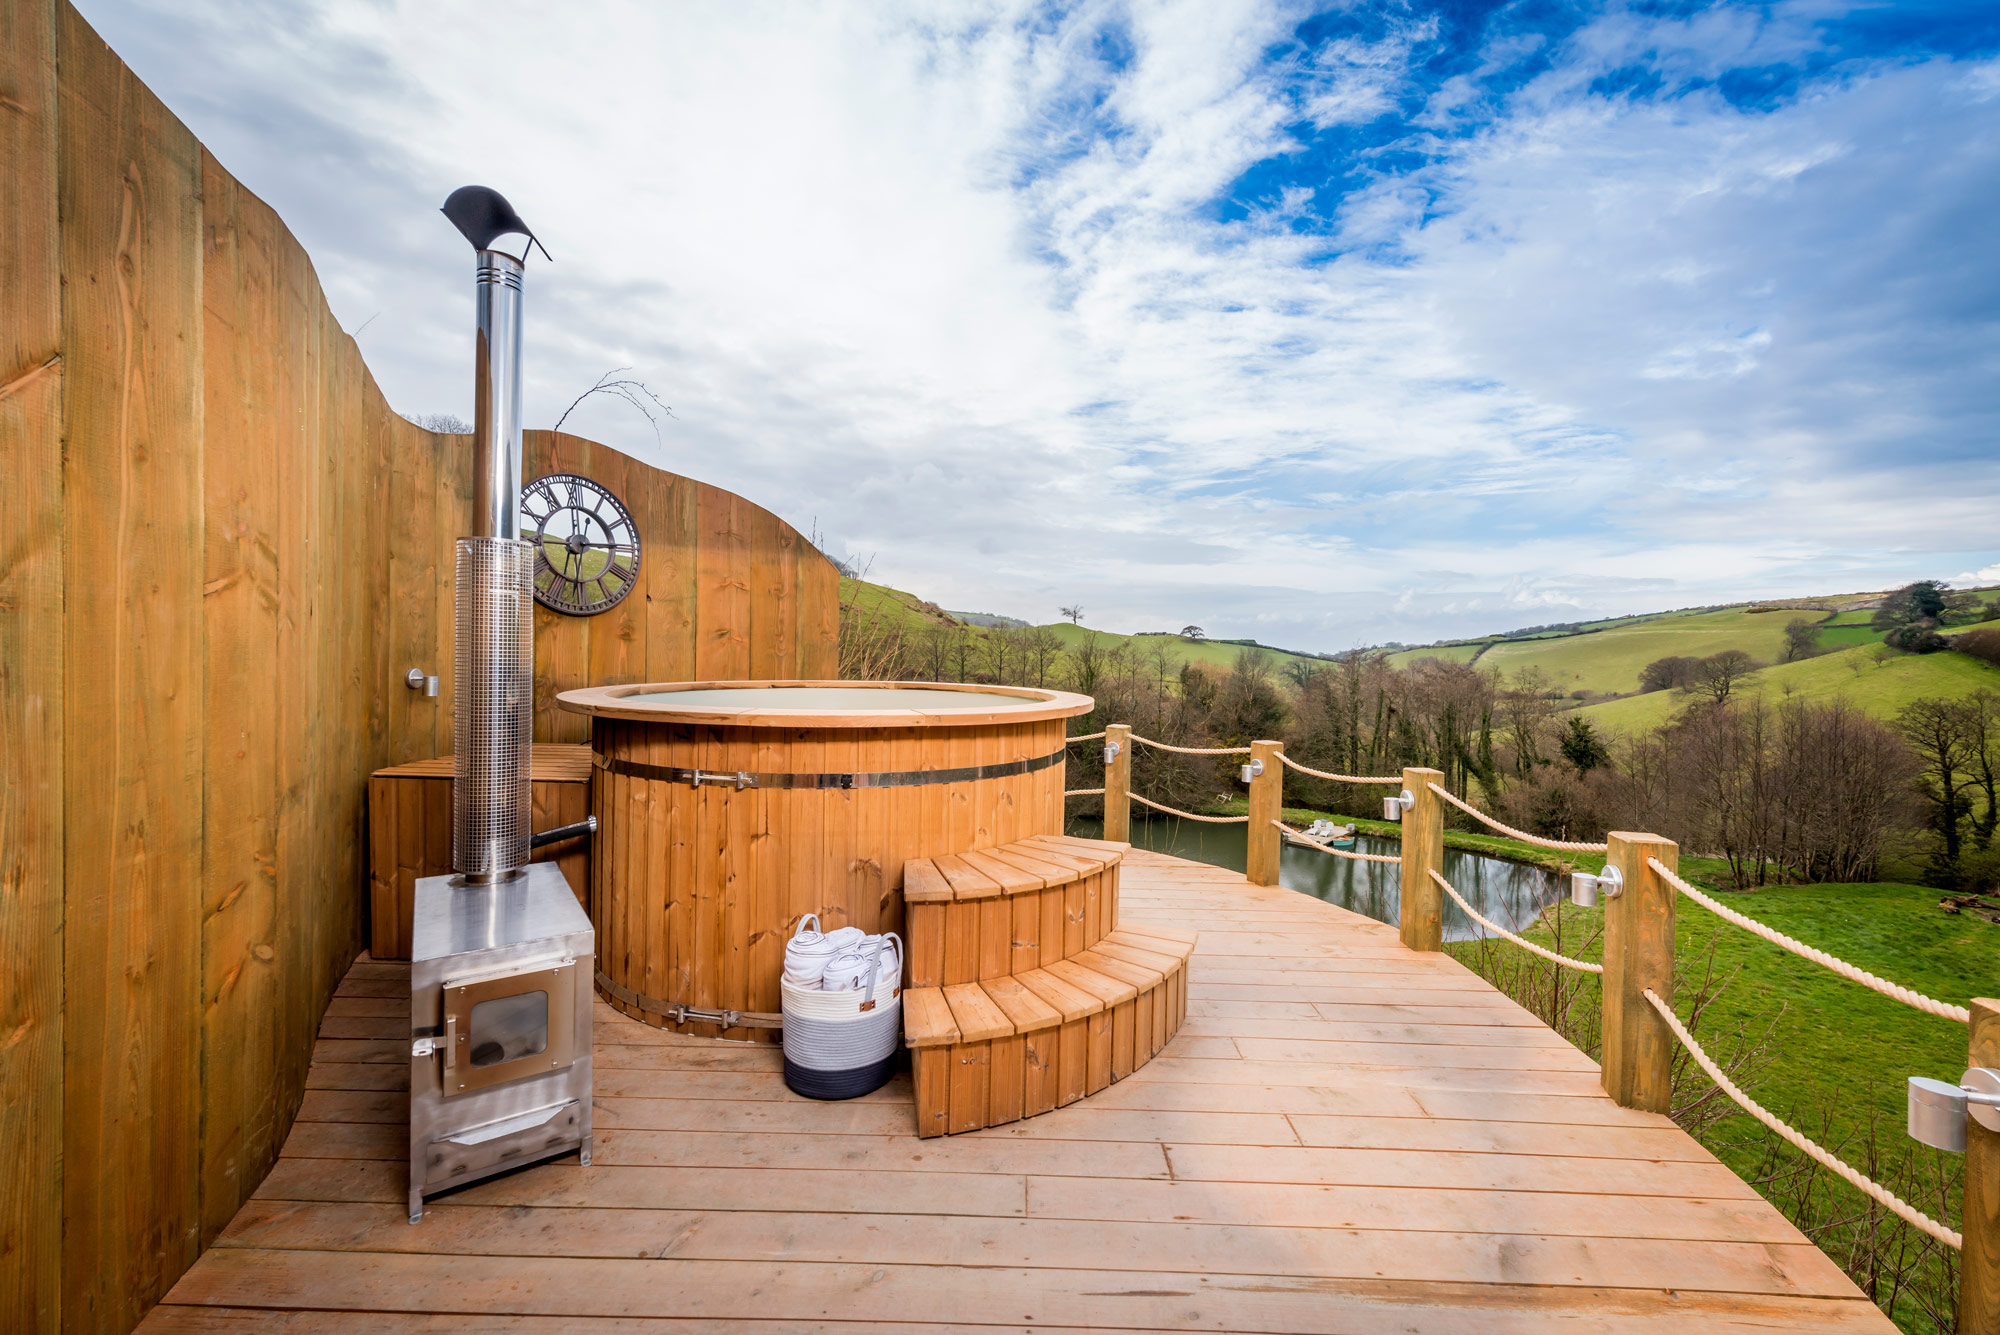 Experience glamping with a hot tub with stunning views at Longlands luxury glamping